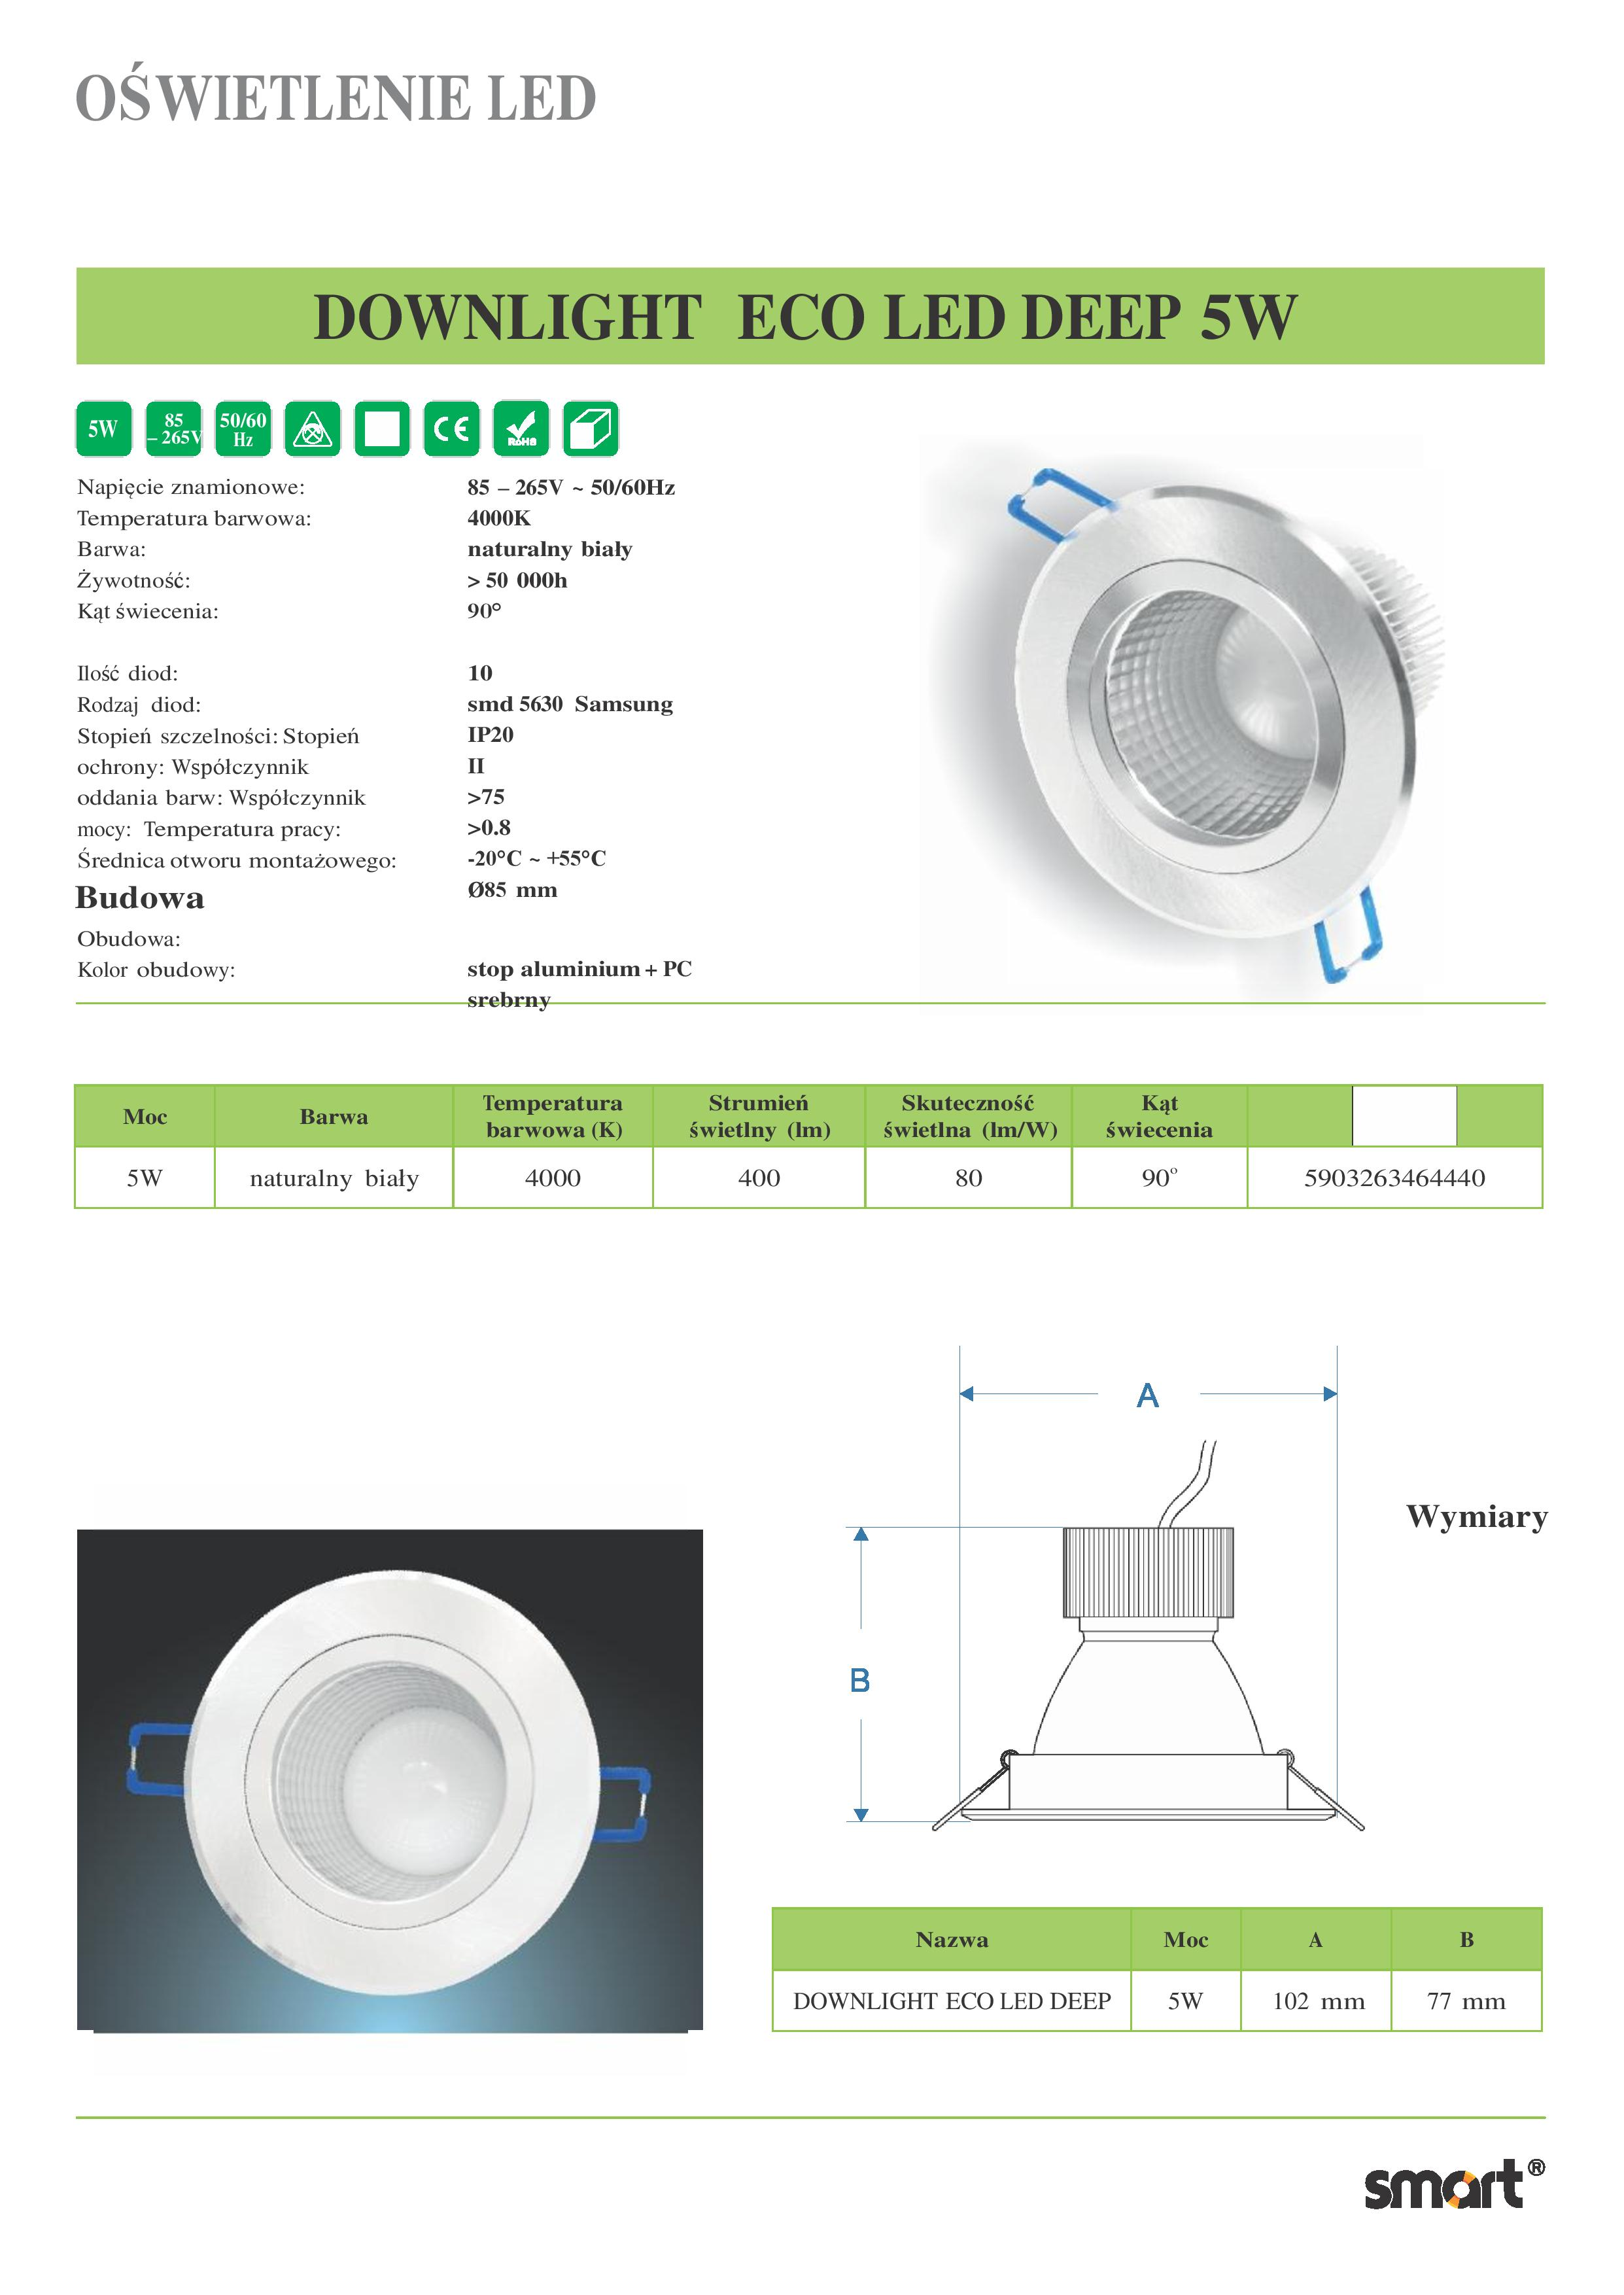 DOWNLIGHT-ECO-LED-DEEP-5W-